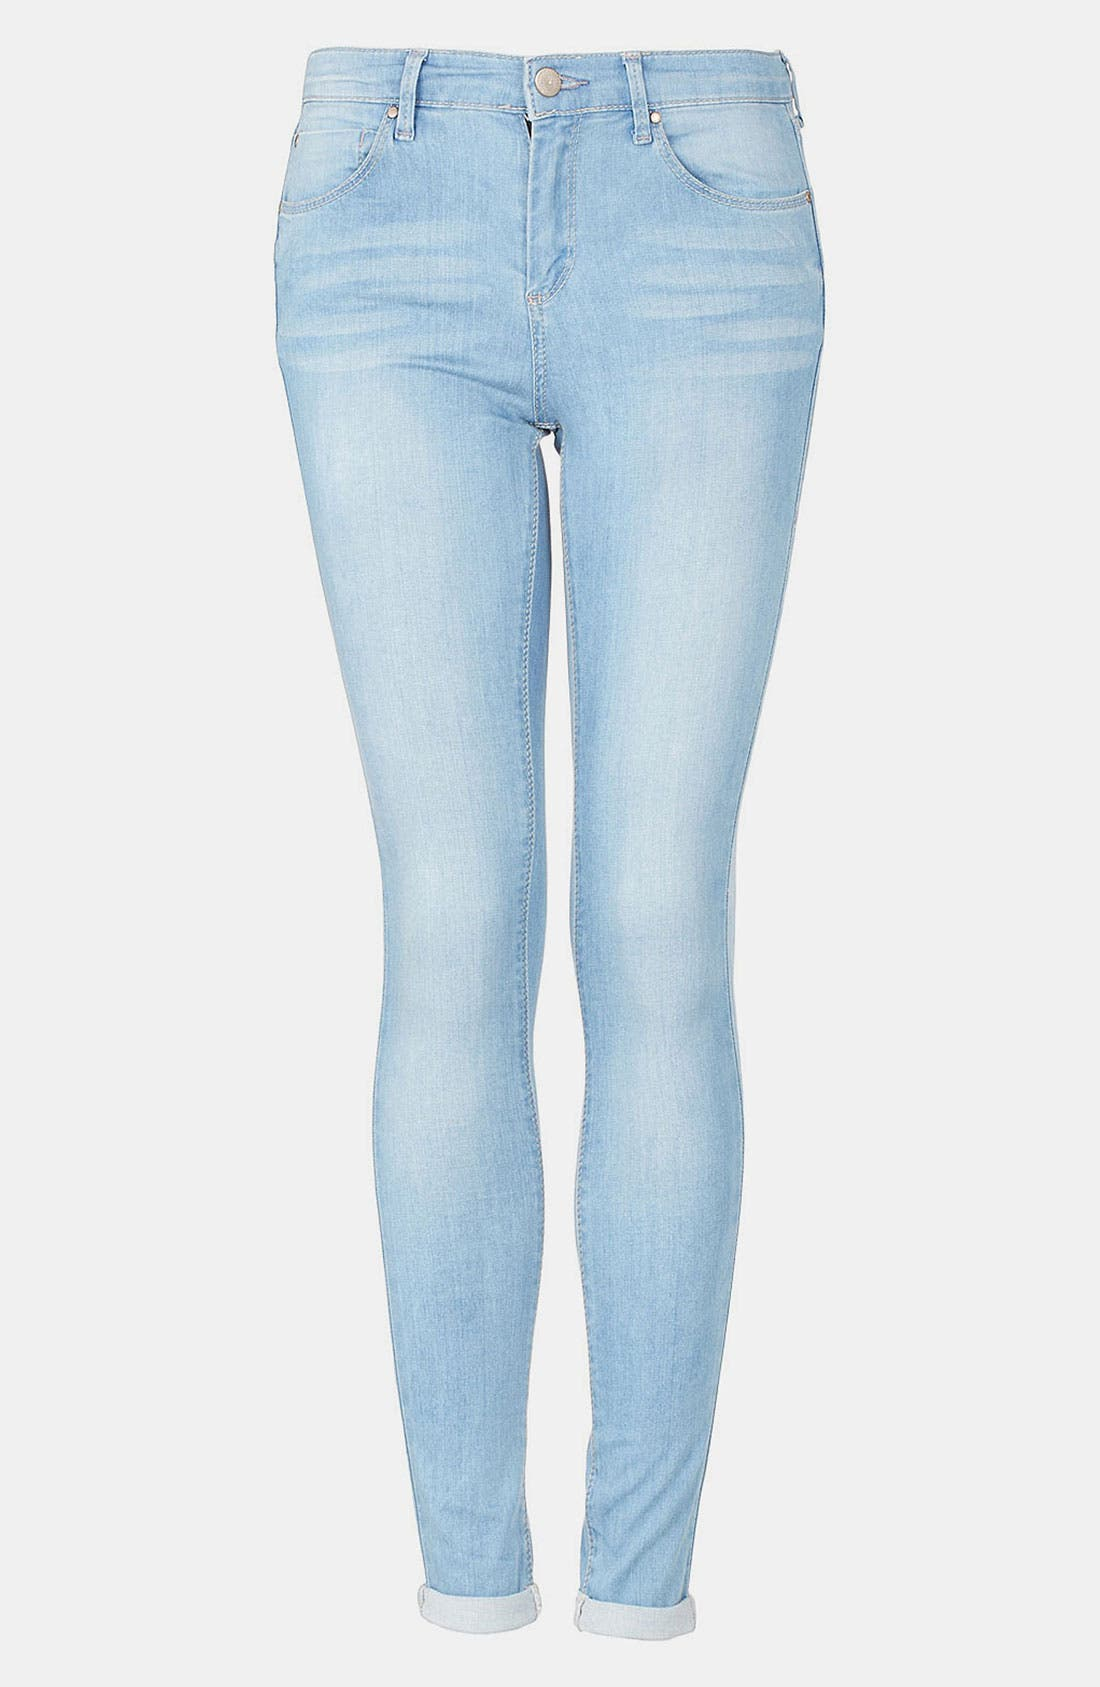 Main Image - Topshop Moto 'Leigh' Bleach Wash Skinny Jeans (Long)